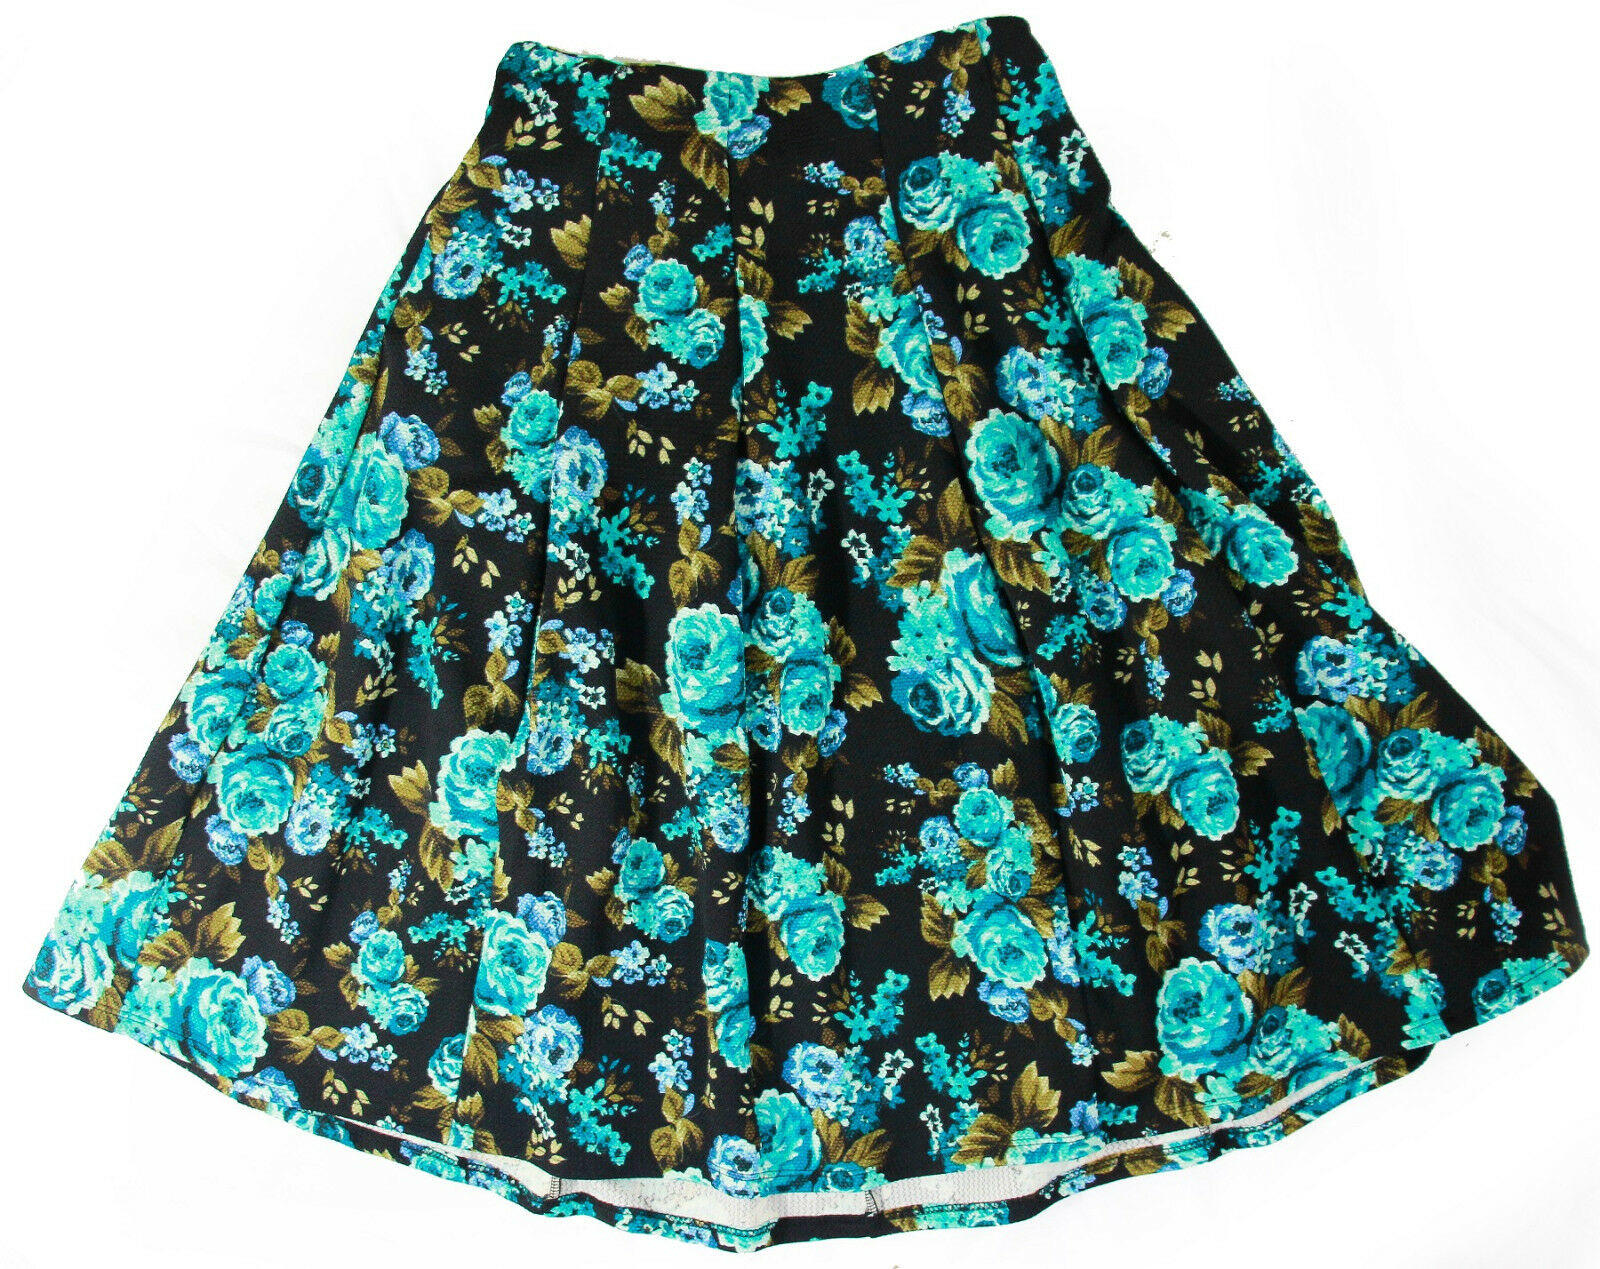 Cali Company Women Fun in Floral Skirt S bluee Knee Length